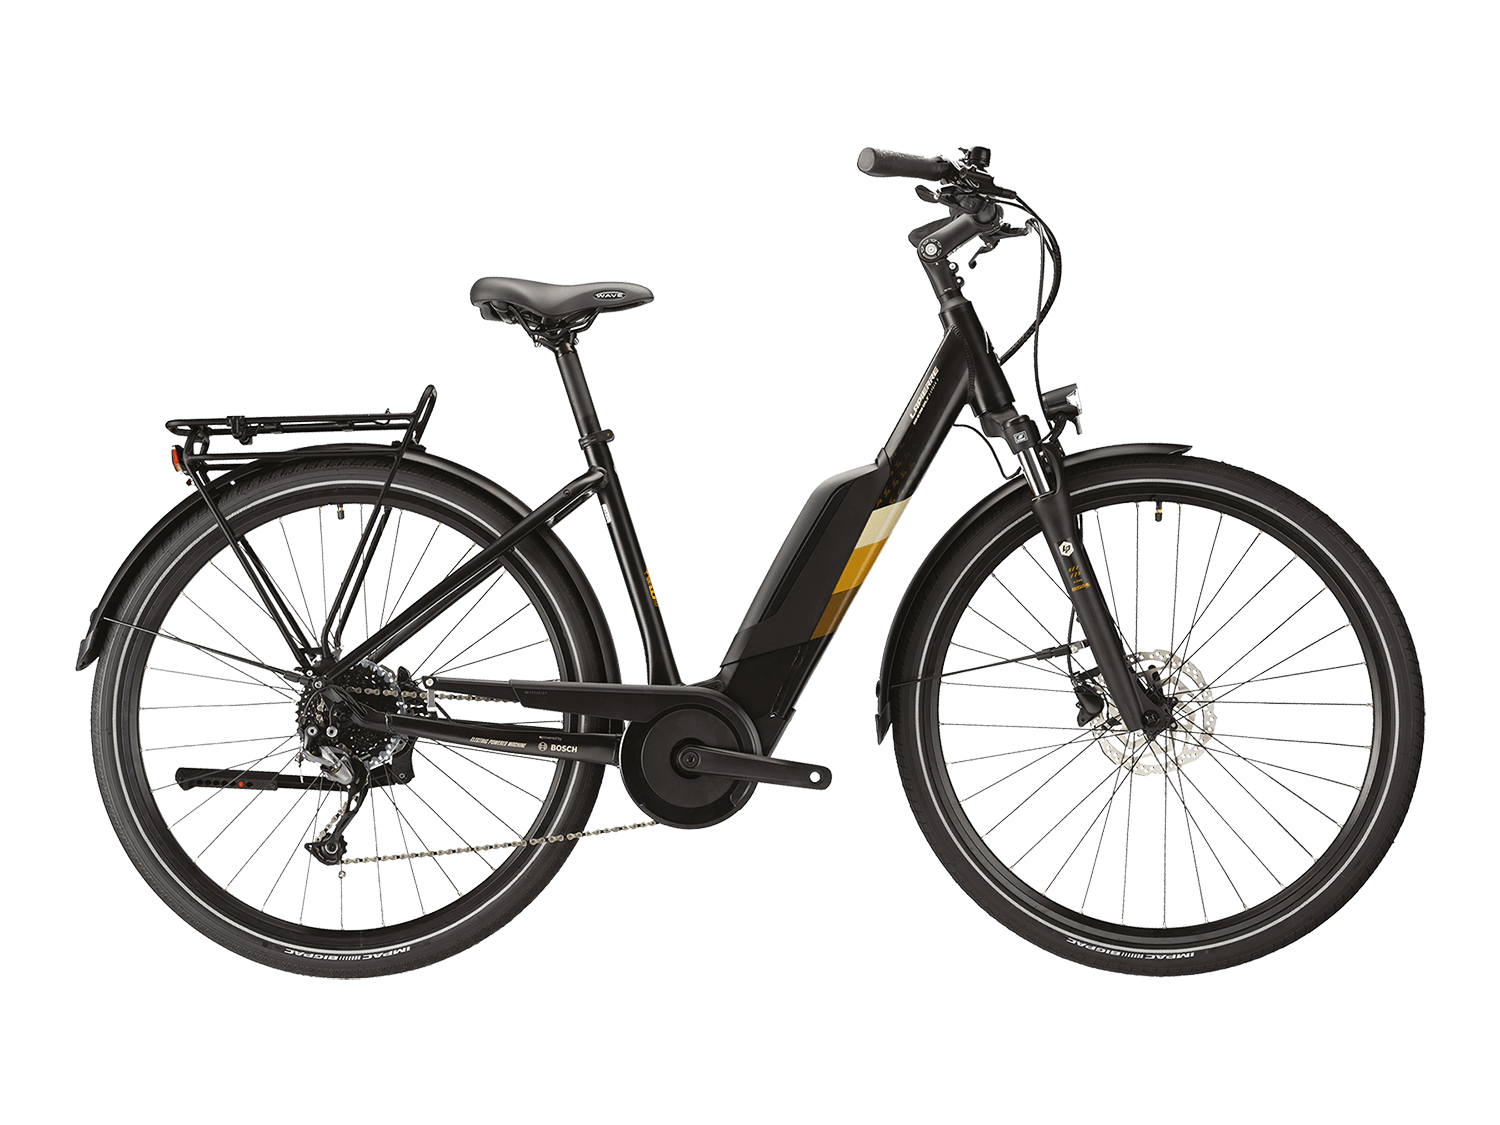 Lapierre Overvolt Urban 6.5 2021 Electric Urban Bike